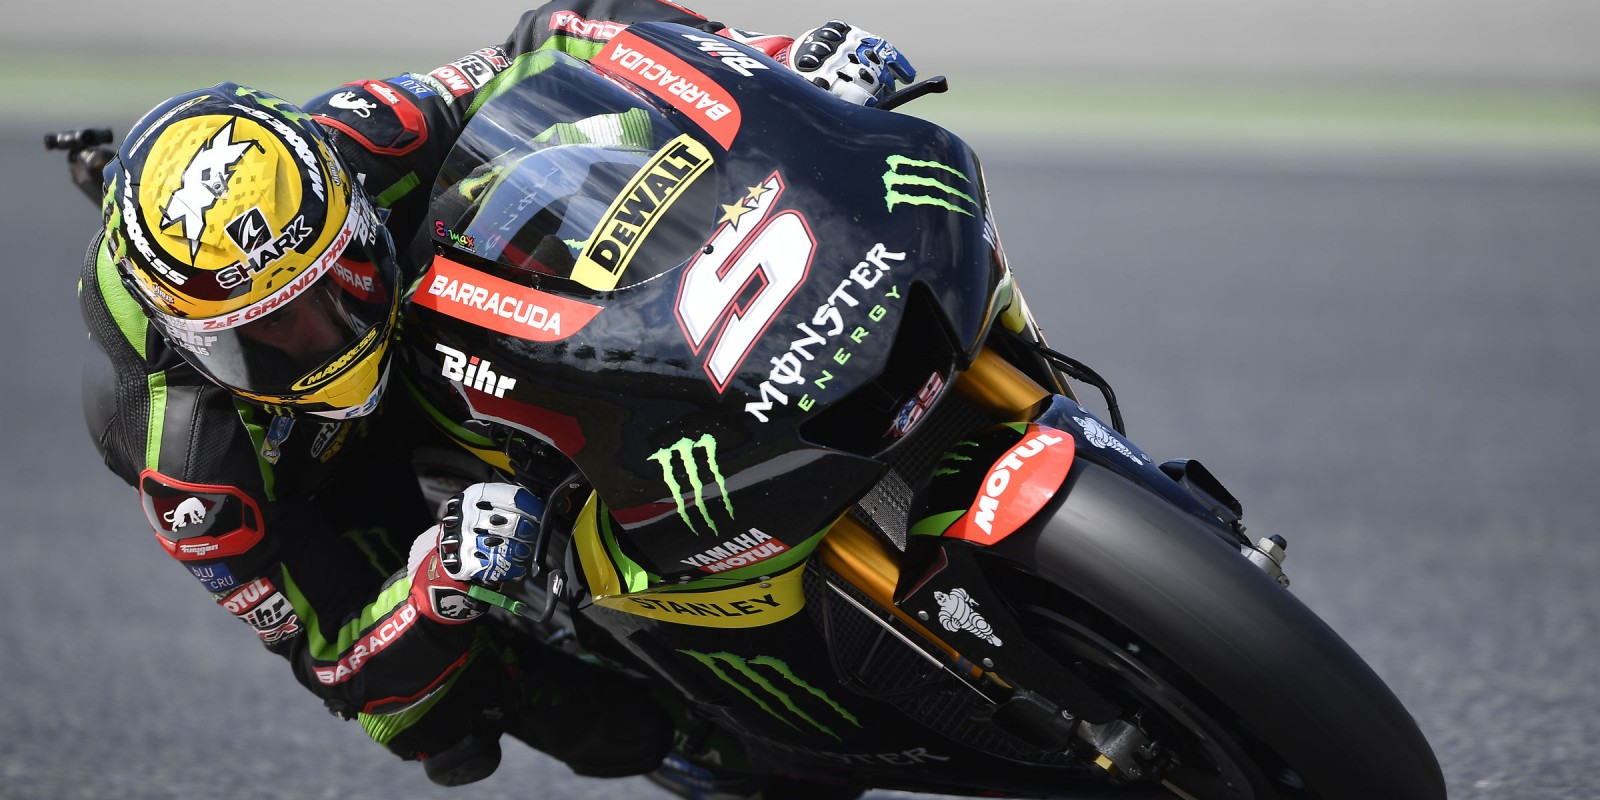 Action images of Yamaha team at Catalunya Grand Prix